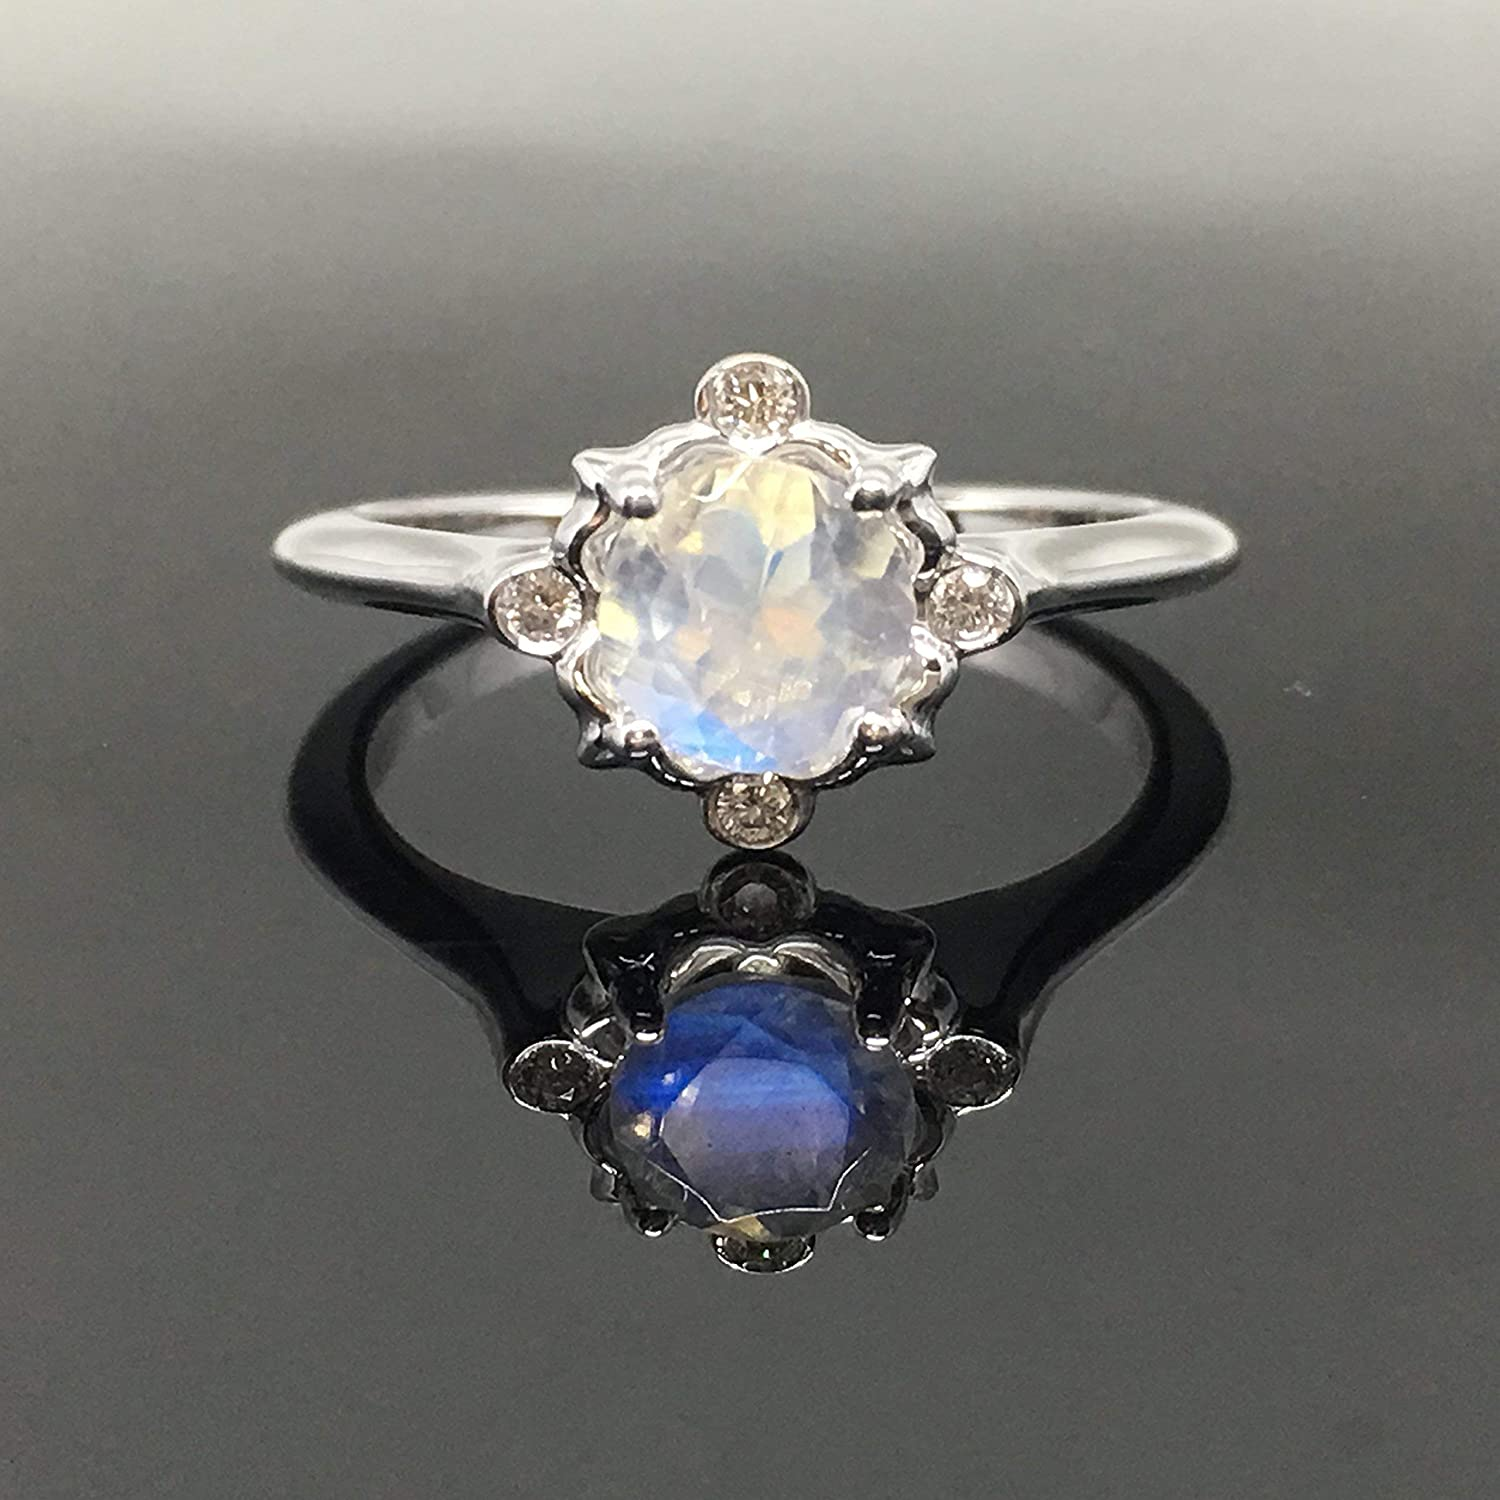 Great Jewelry Greatest Item Gift for Friend 925 Sterling Silver White Rainbow Moonstone Real Gemstones Ring Real Gemstones Round Faceted Rainbow Moonstone Ring